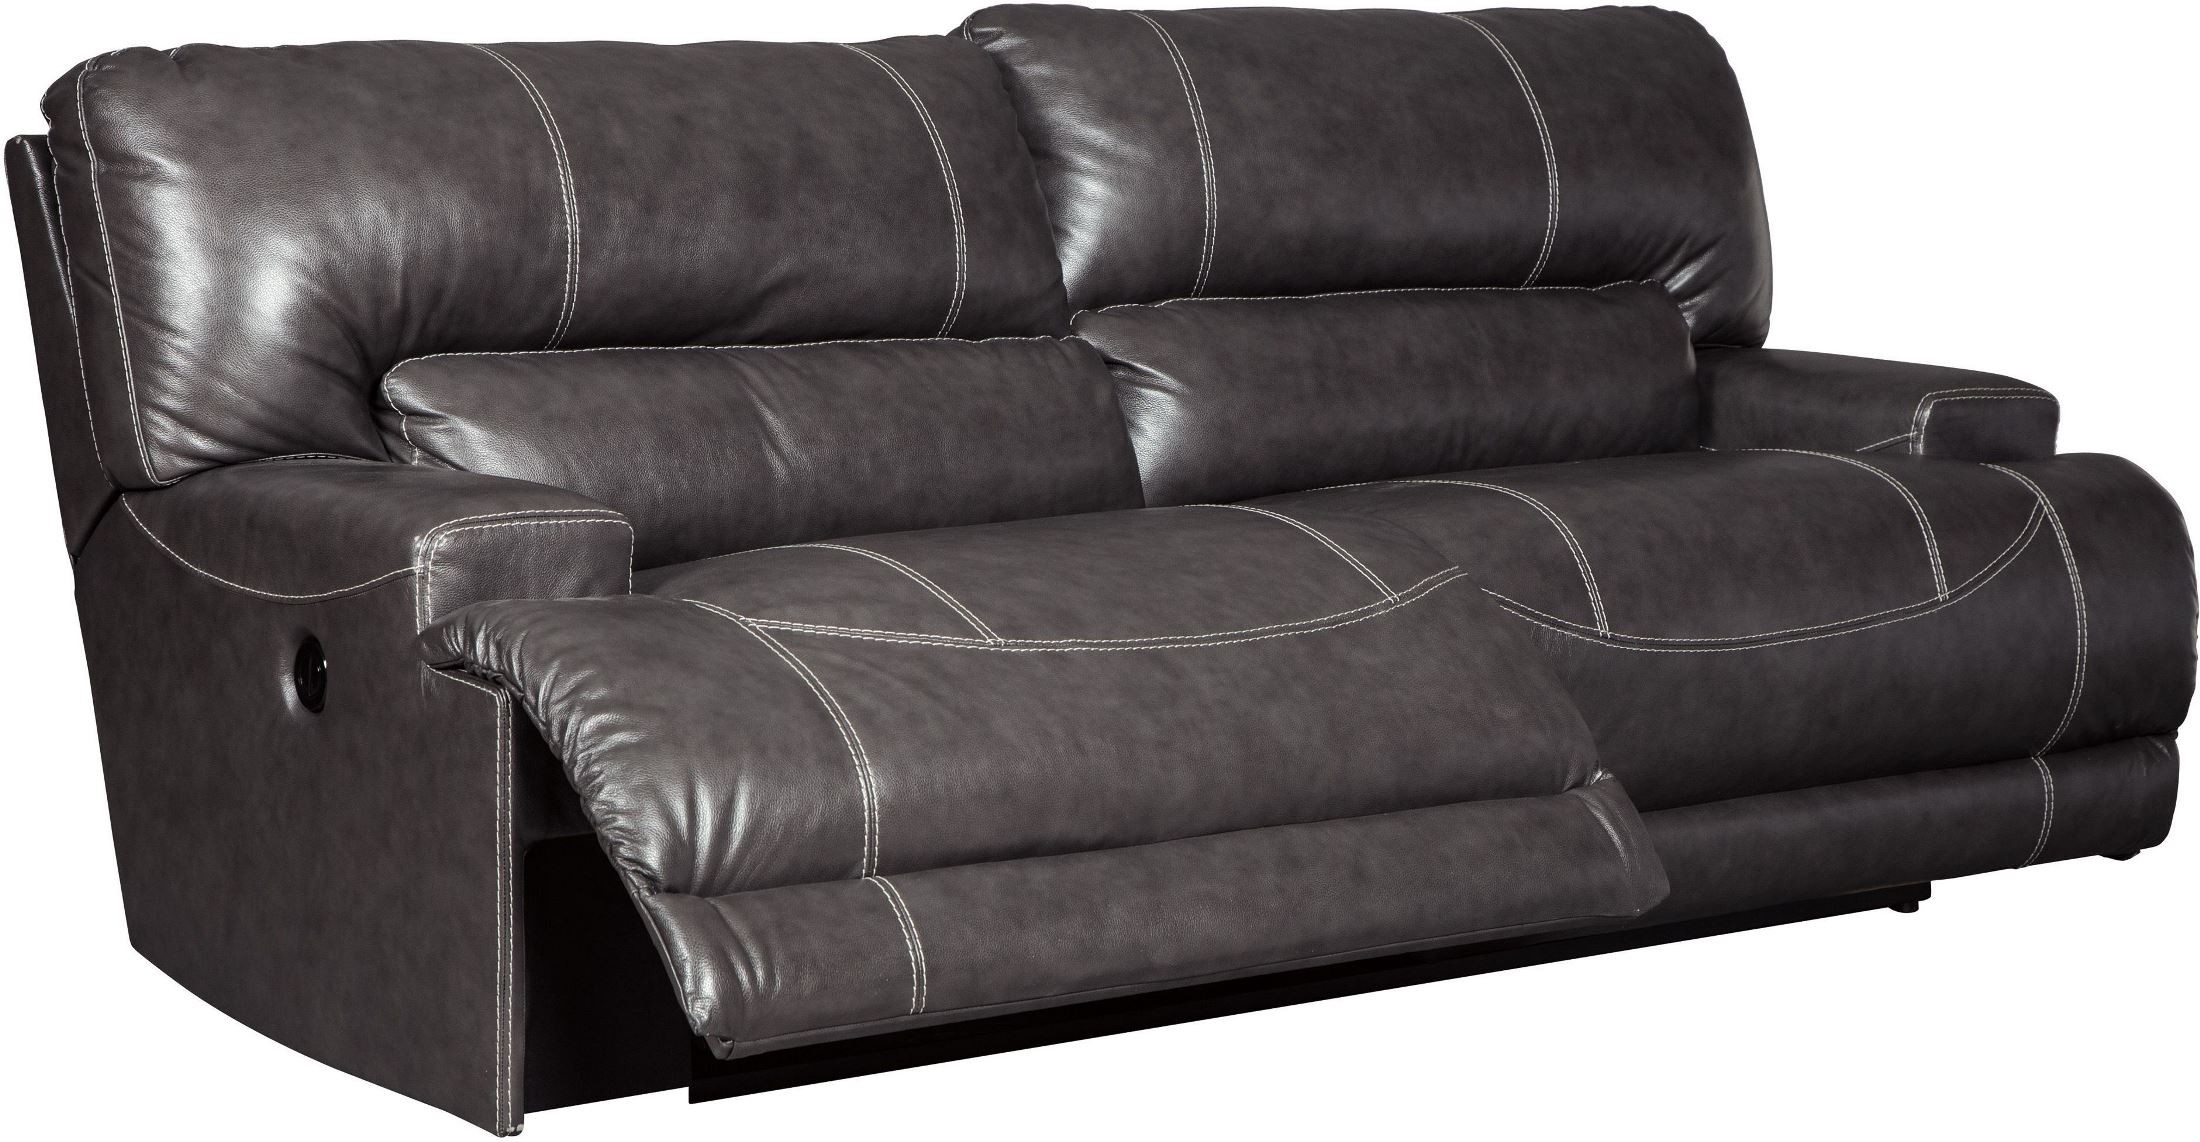 Mccaskill Gray 2 Seat Power Reclining Sofa From Ashley